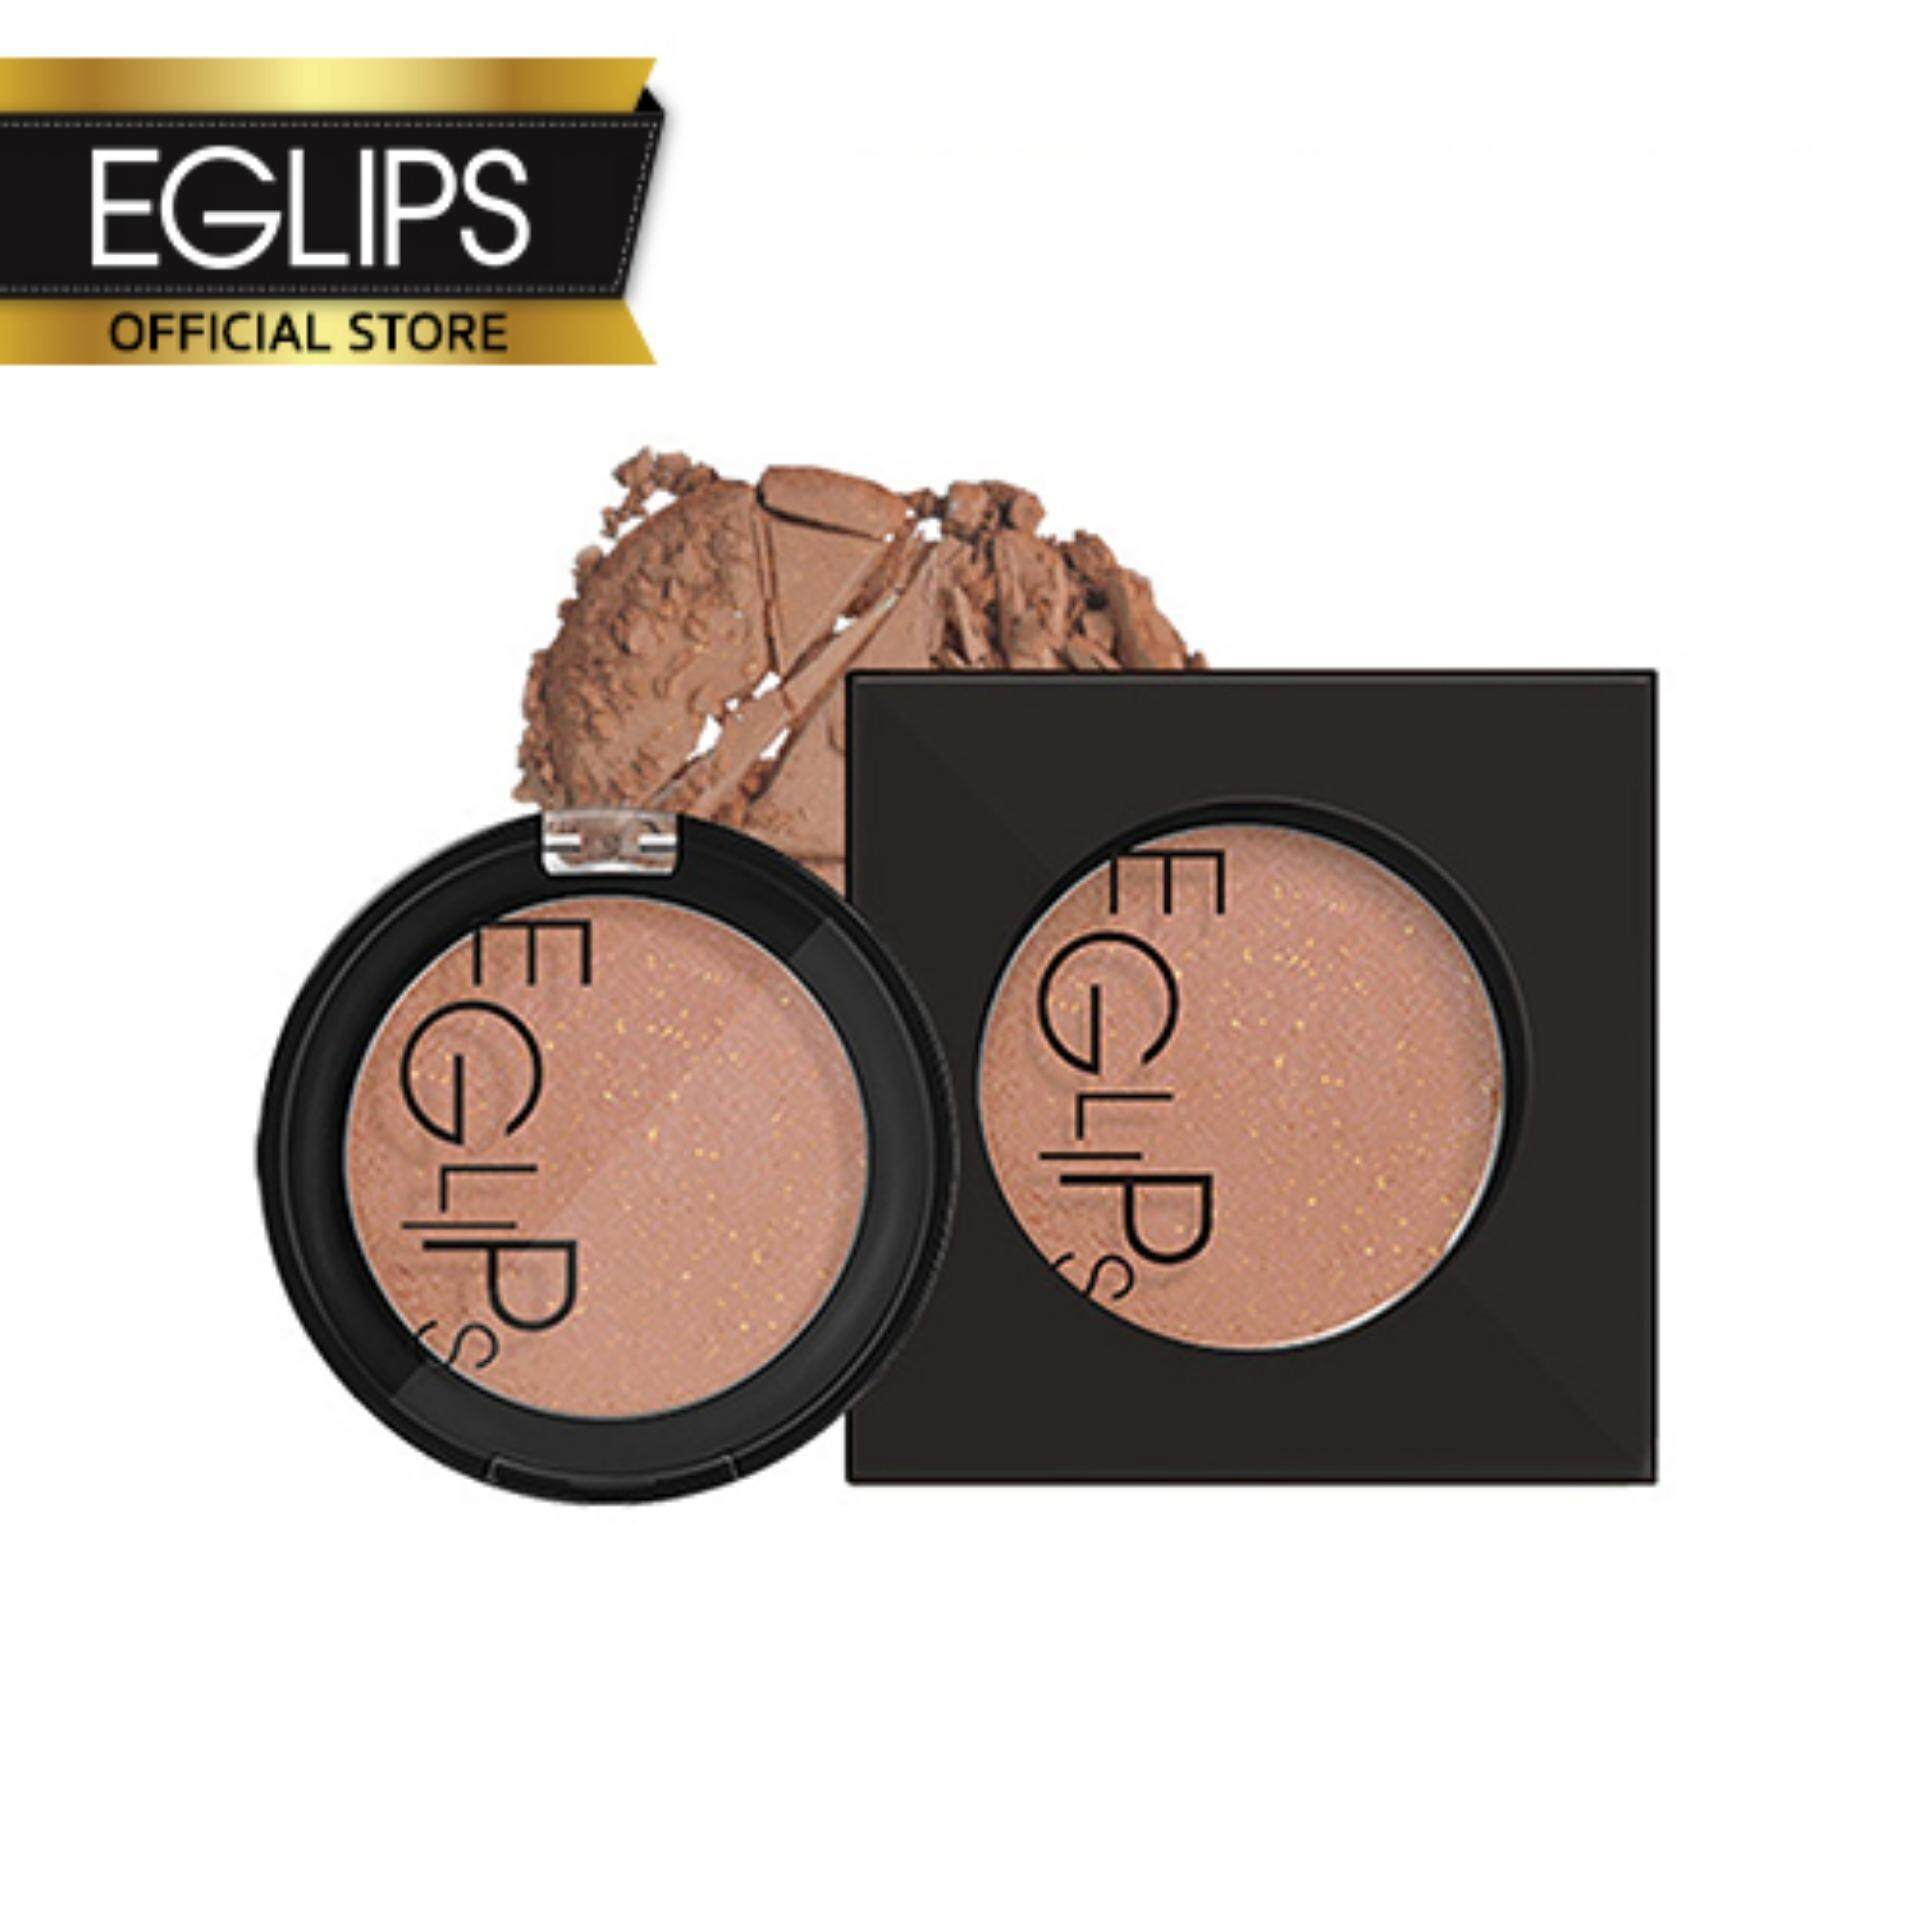 Eglips Apple Fit Blusher – 10 Almond Bronze